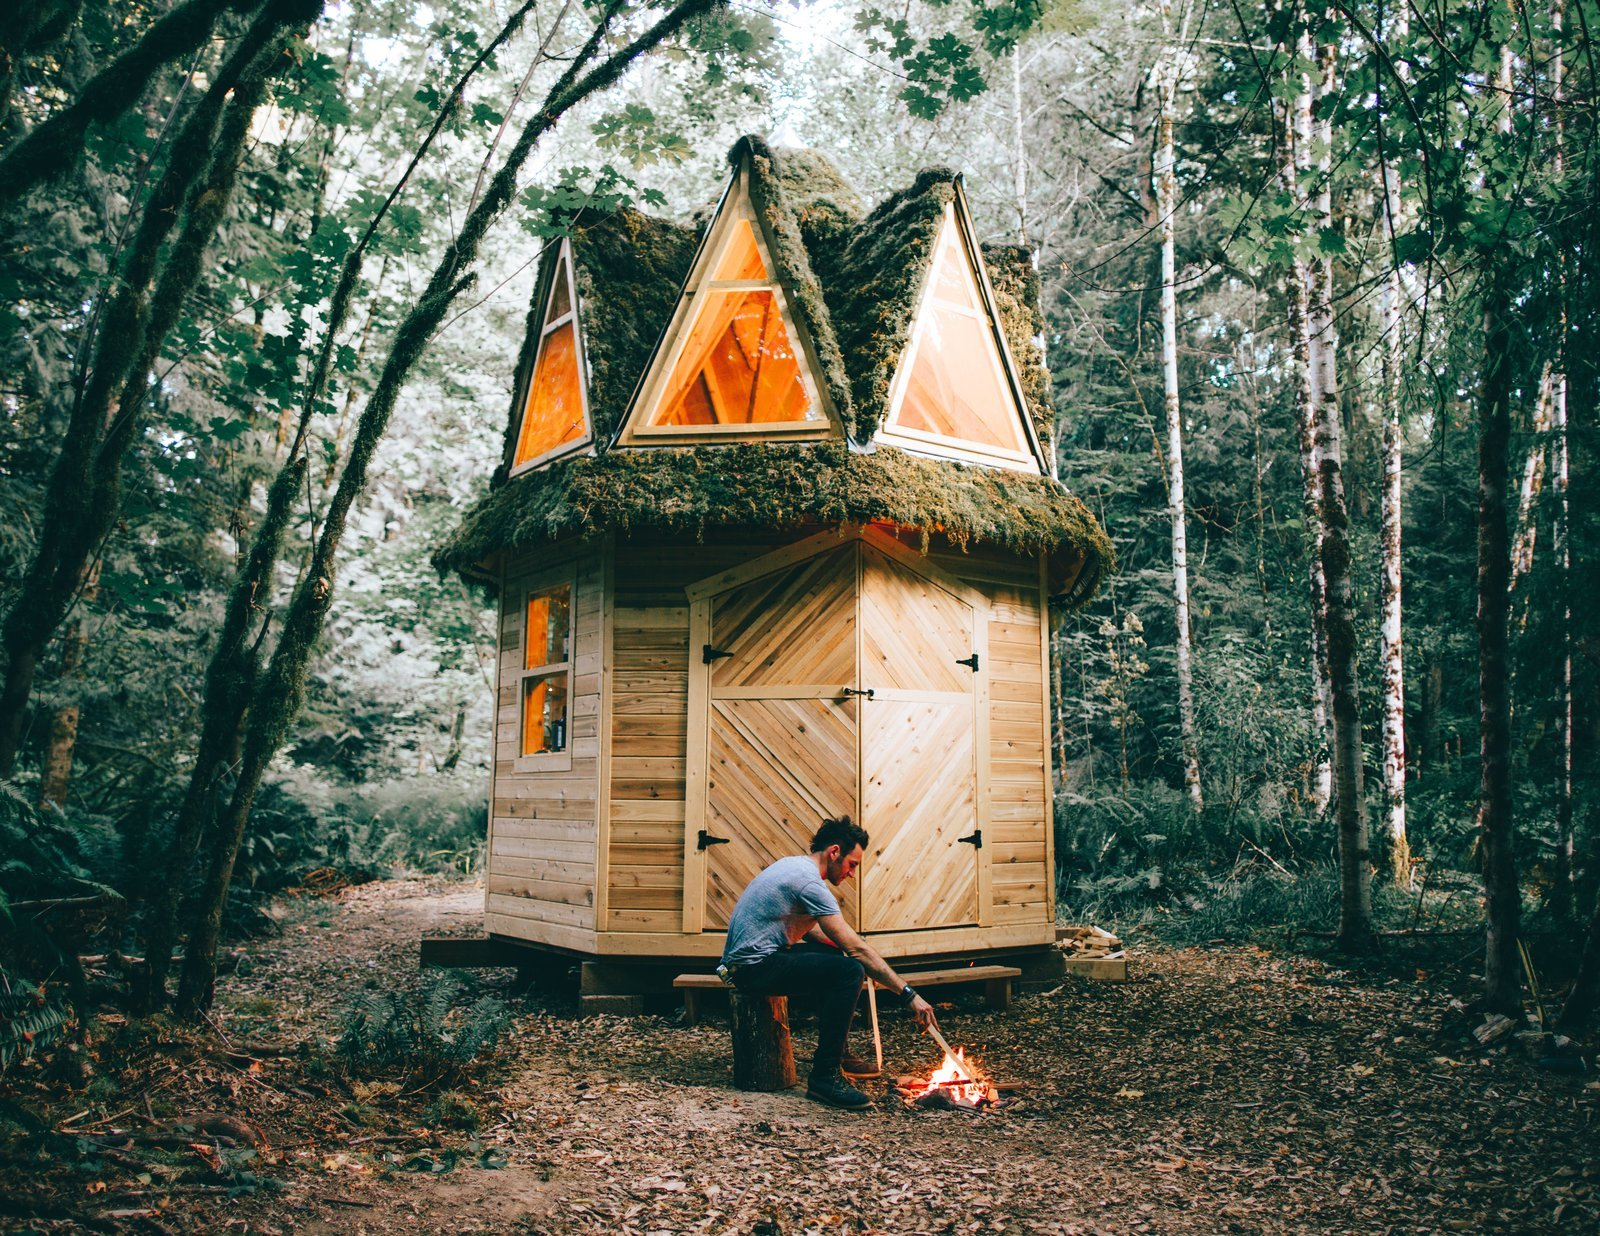 This Moss-Covered, Octagonal Micro-Cabin Combines Luxury and Rustic Aesthetic